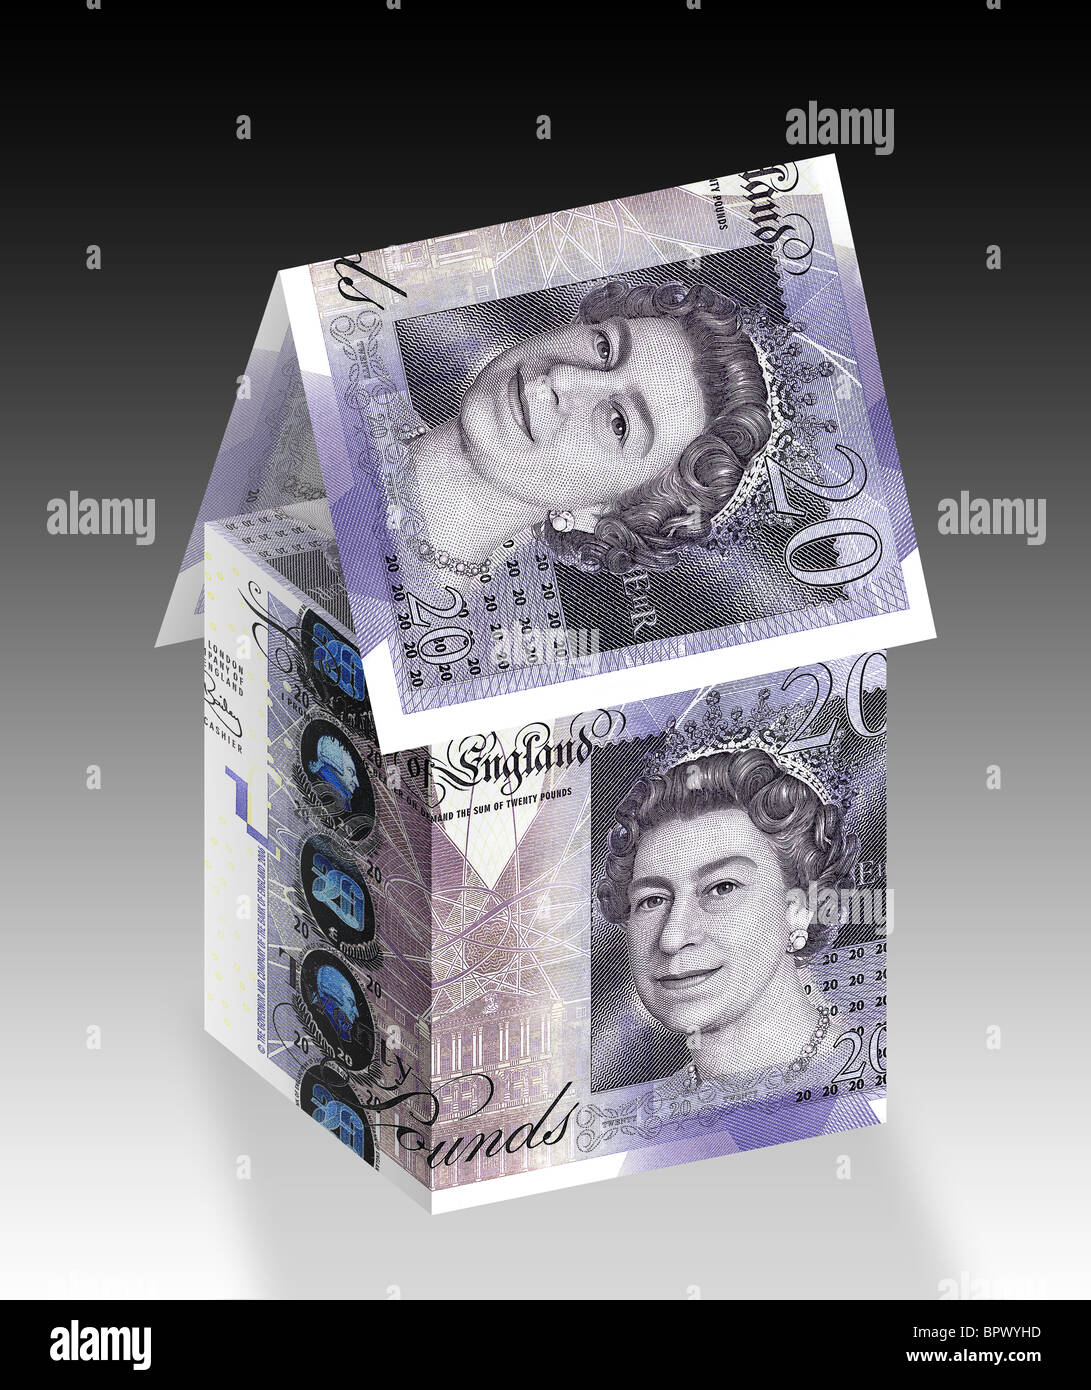 House made up with £20 twenty pound notes. Stock Photo